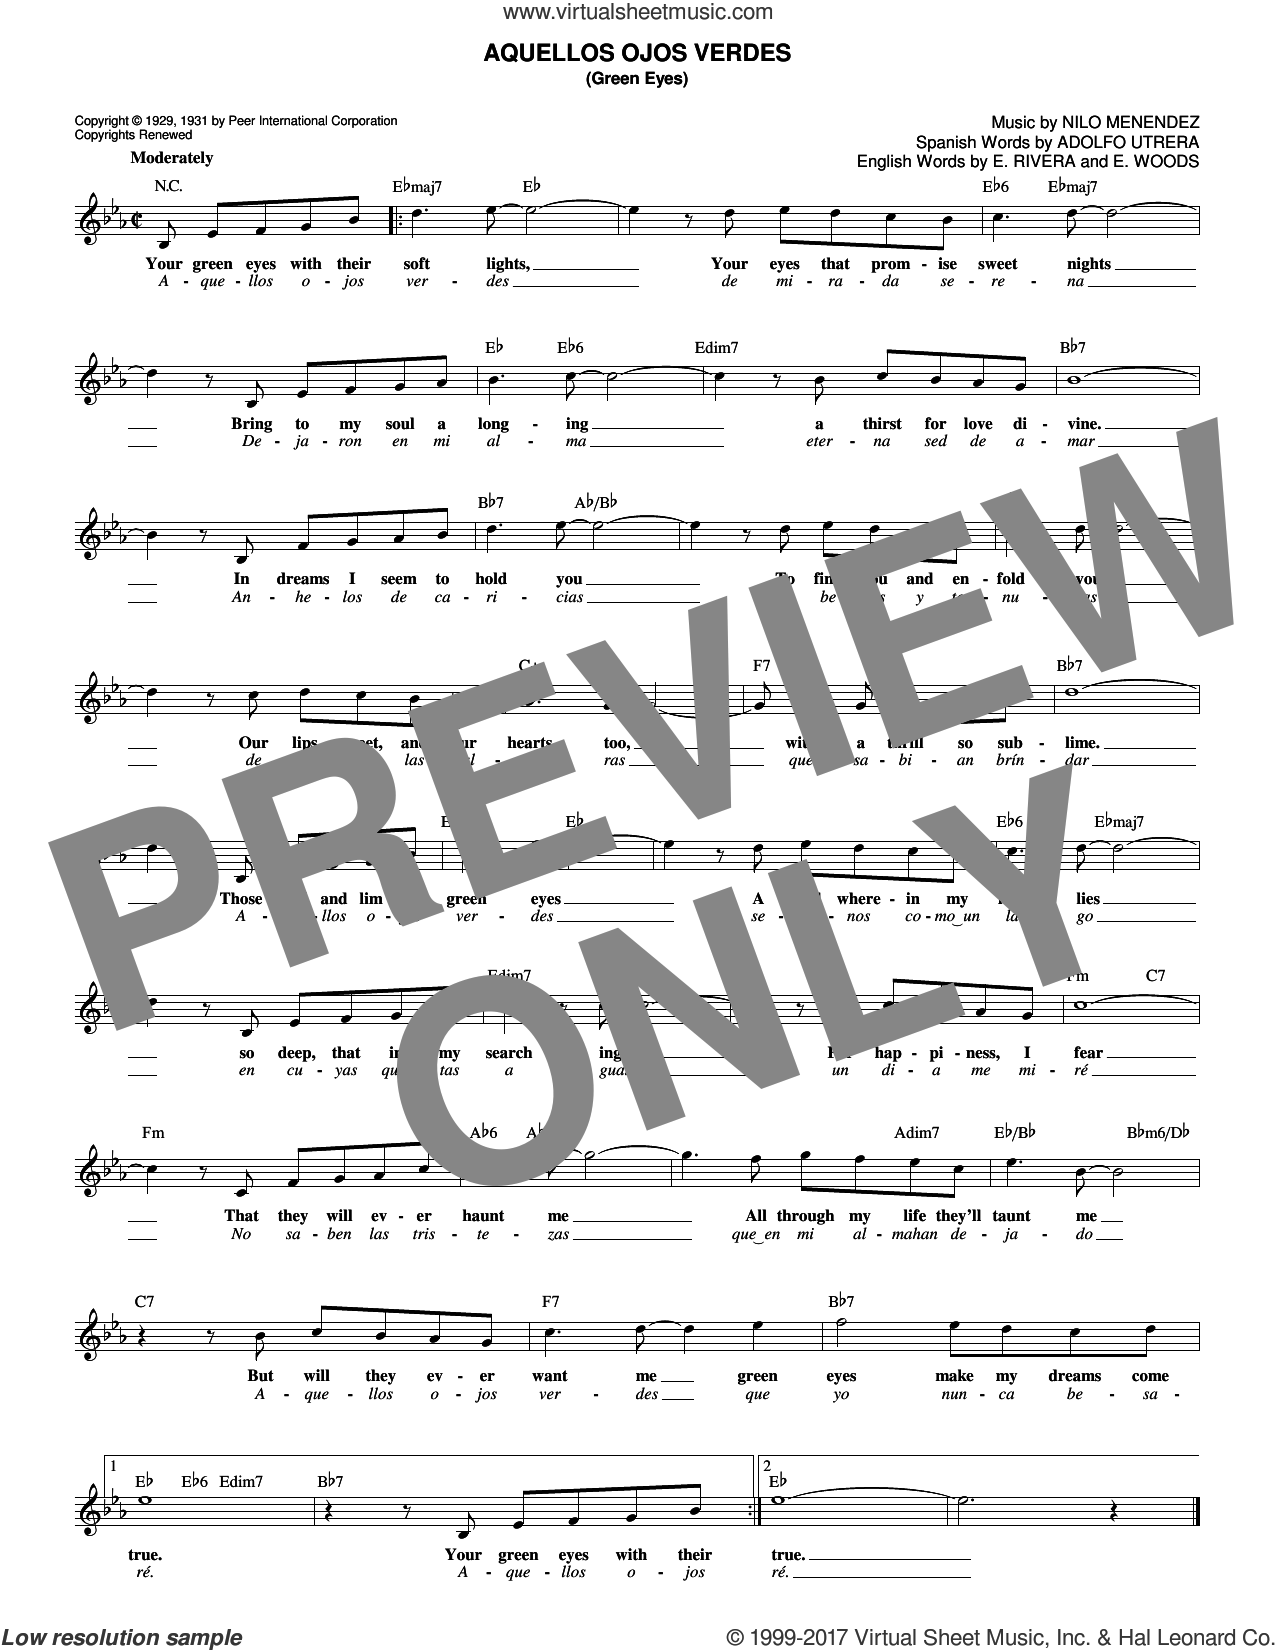 Aquellos Ojos Verdes (Green Eyes) sheet music for voice and other instruments (fake book) by Jimmy Dorsey and Nilo Menendez. Score Image Preview.